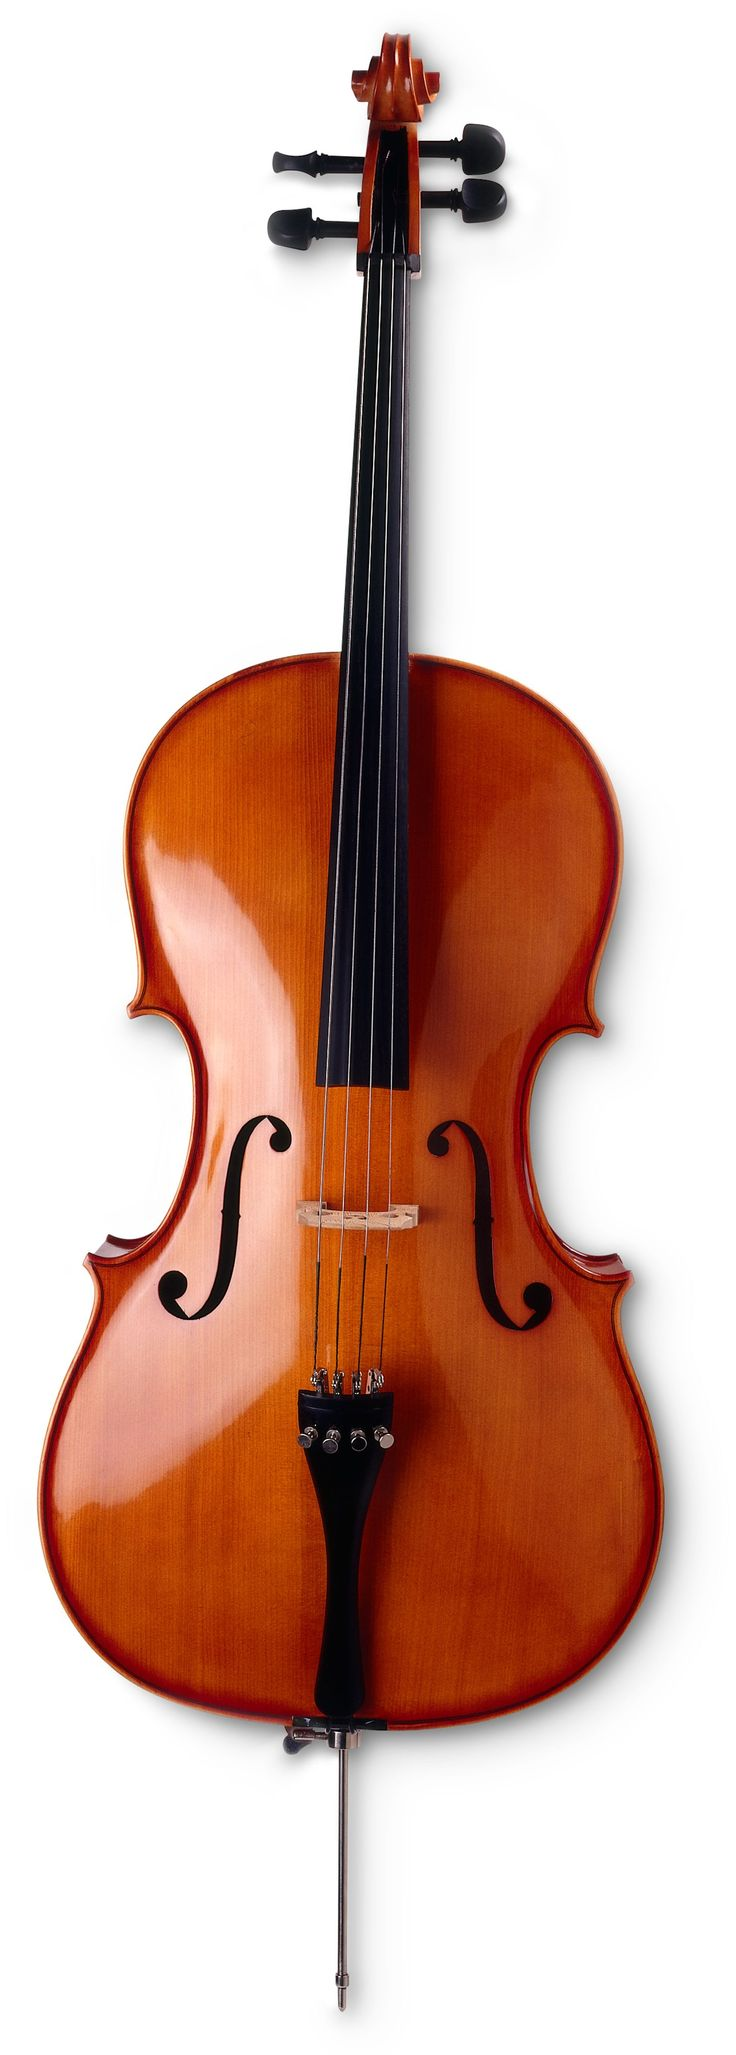 SANDNER SC6 4/4 CELLO OUTFIT FRONT